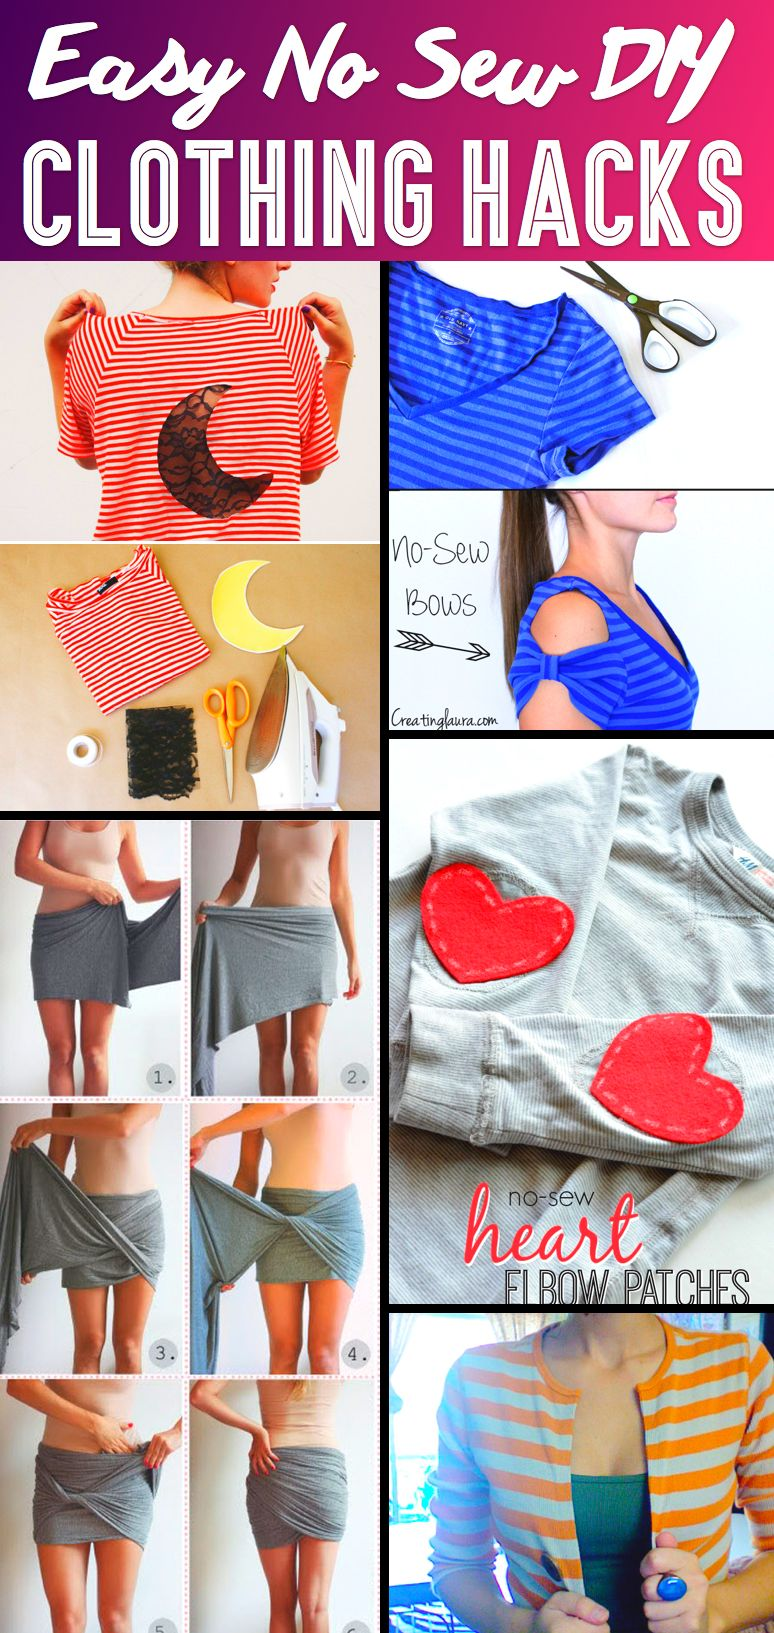 37 Truly Easy No Sew DIY Clothing Hacks - Clothing hacks, Diy sewing, Cute diy projects, Wine bottle diy crafts, Diy clothes videos, Diy clothes - 1  DIY NoSew Cardigan If an old shirt with colors and patterns that you absolutely love doesn't fit you perfectly anymore, you don't have to discard it  Instead, you can transform it into something new, that too without the hassle of complicated sewing  This tutorial teaches you how to turn a tee into a cardigan …